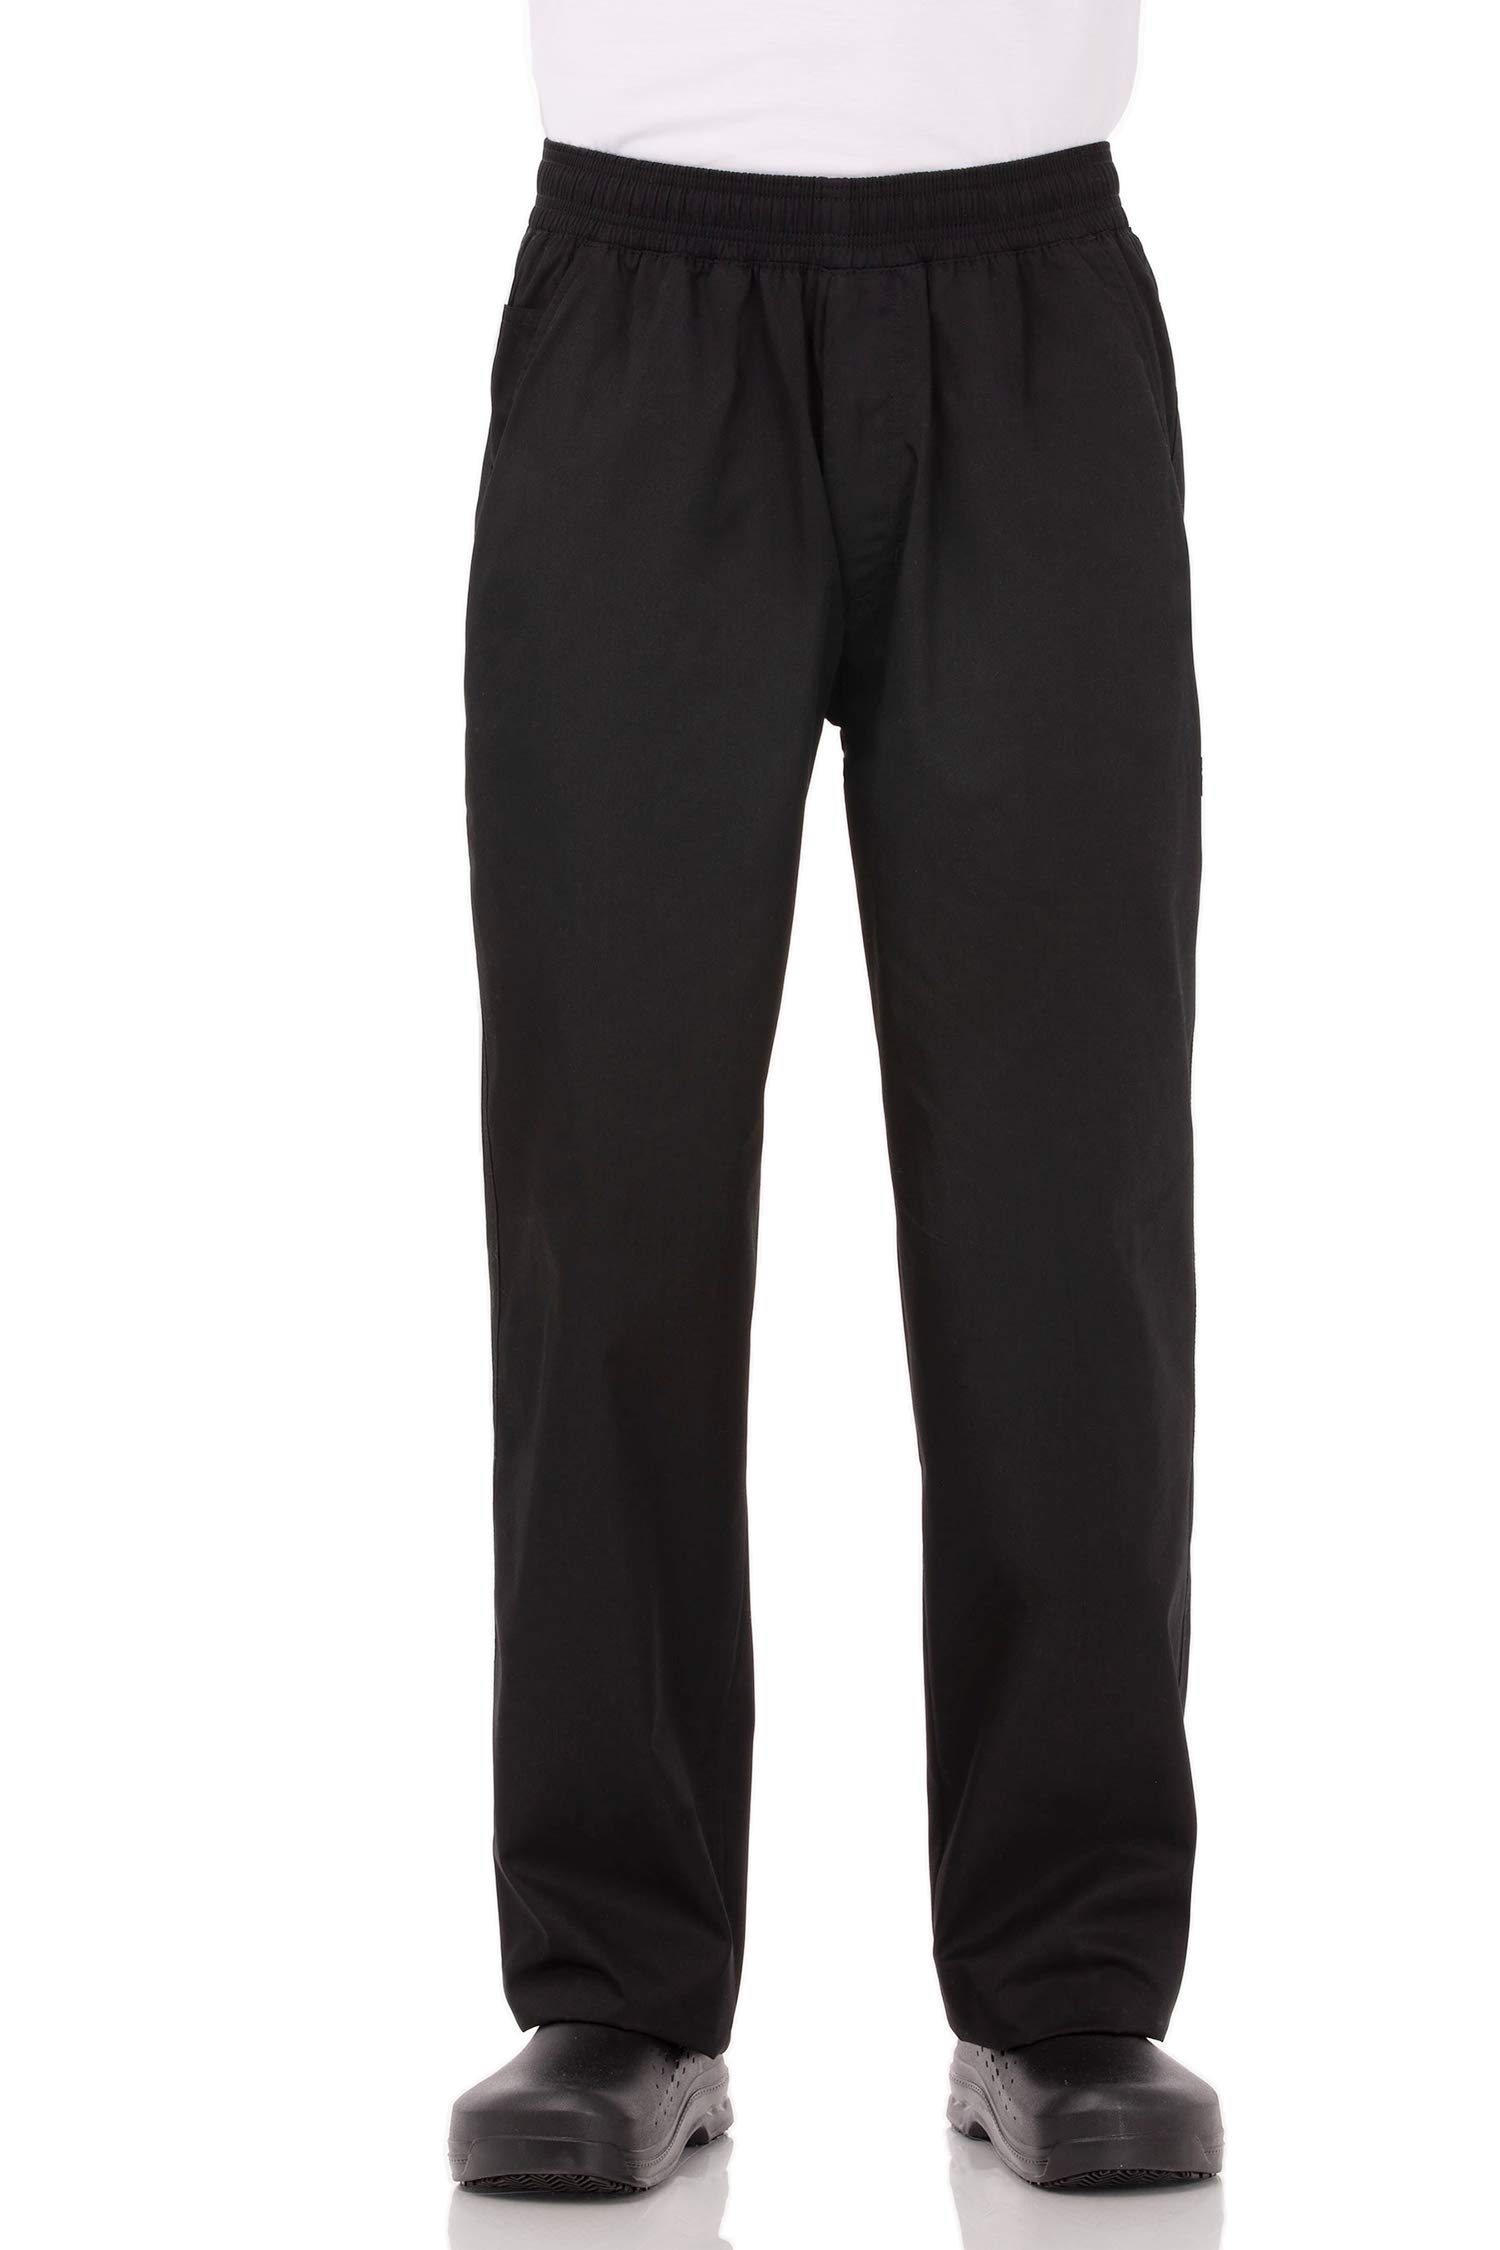 Chef Works Men's Essential Baggy Chef Pants, Black, 7X-Large by Chef Works